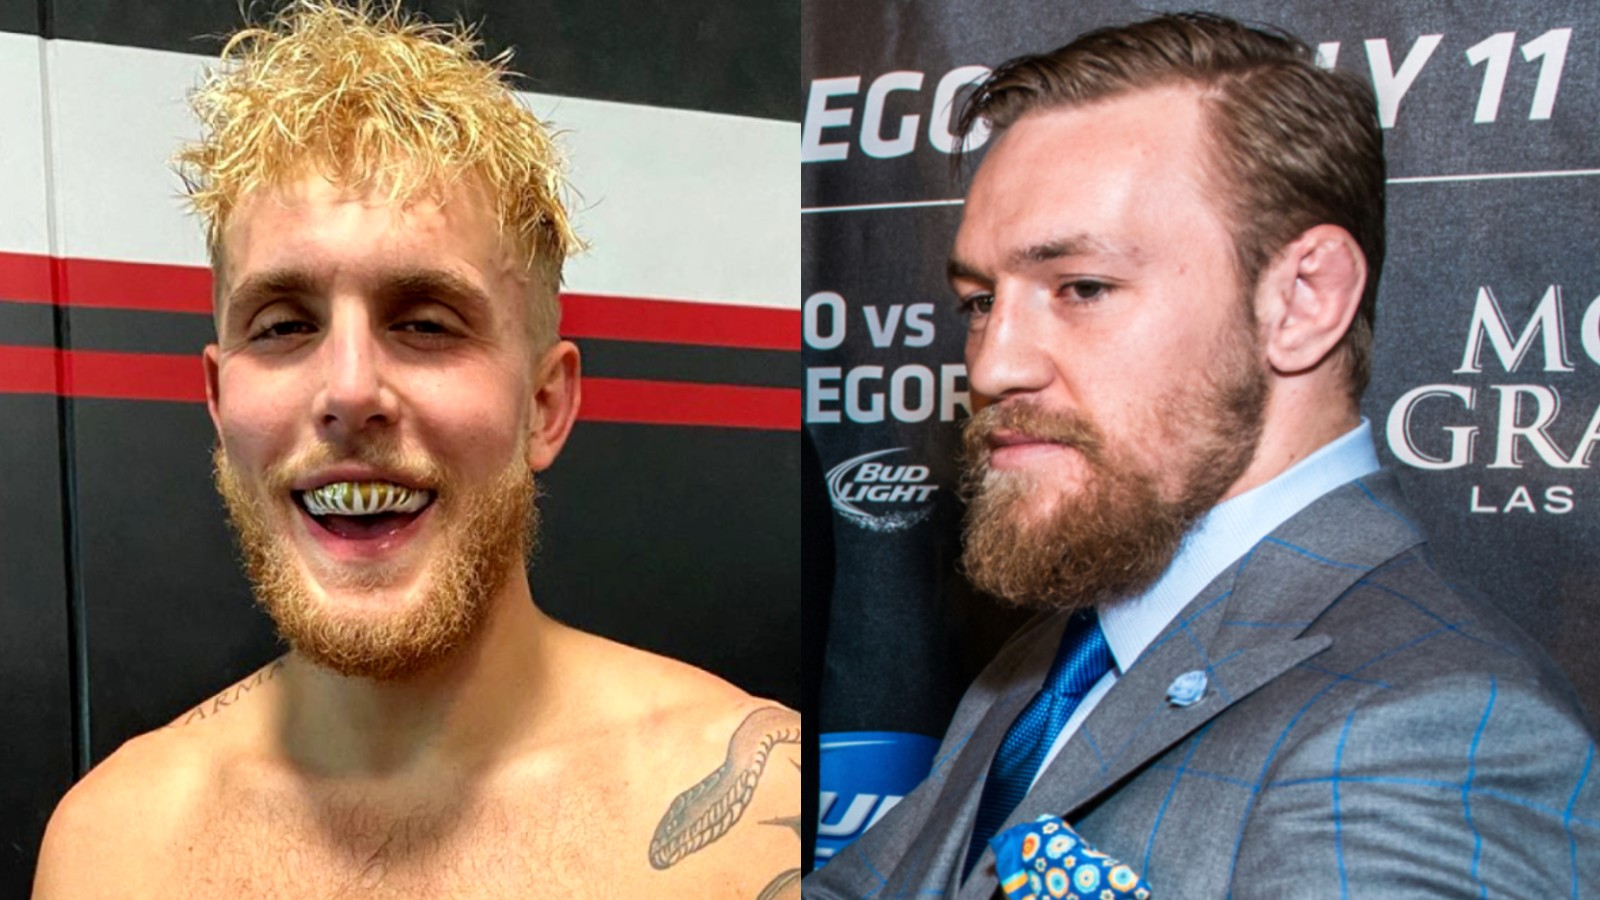 Image of Jake Paul and image of Conor McGregor side by side